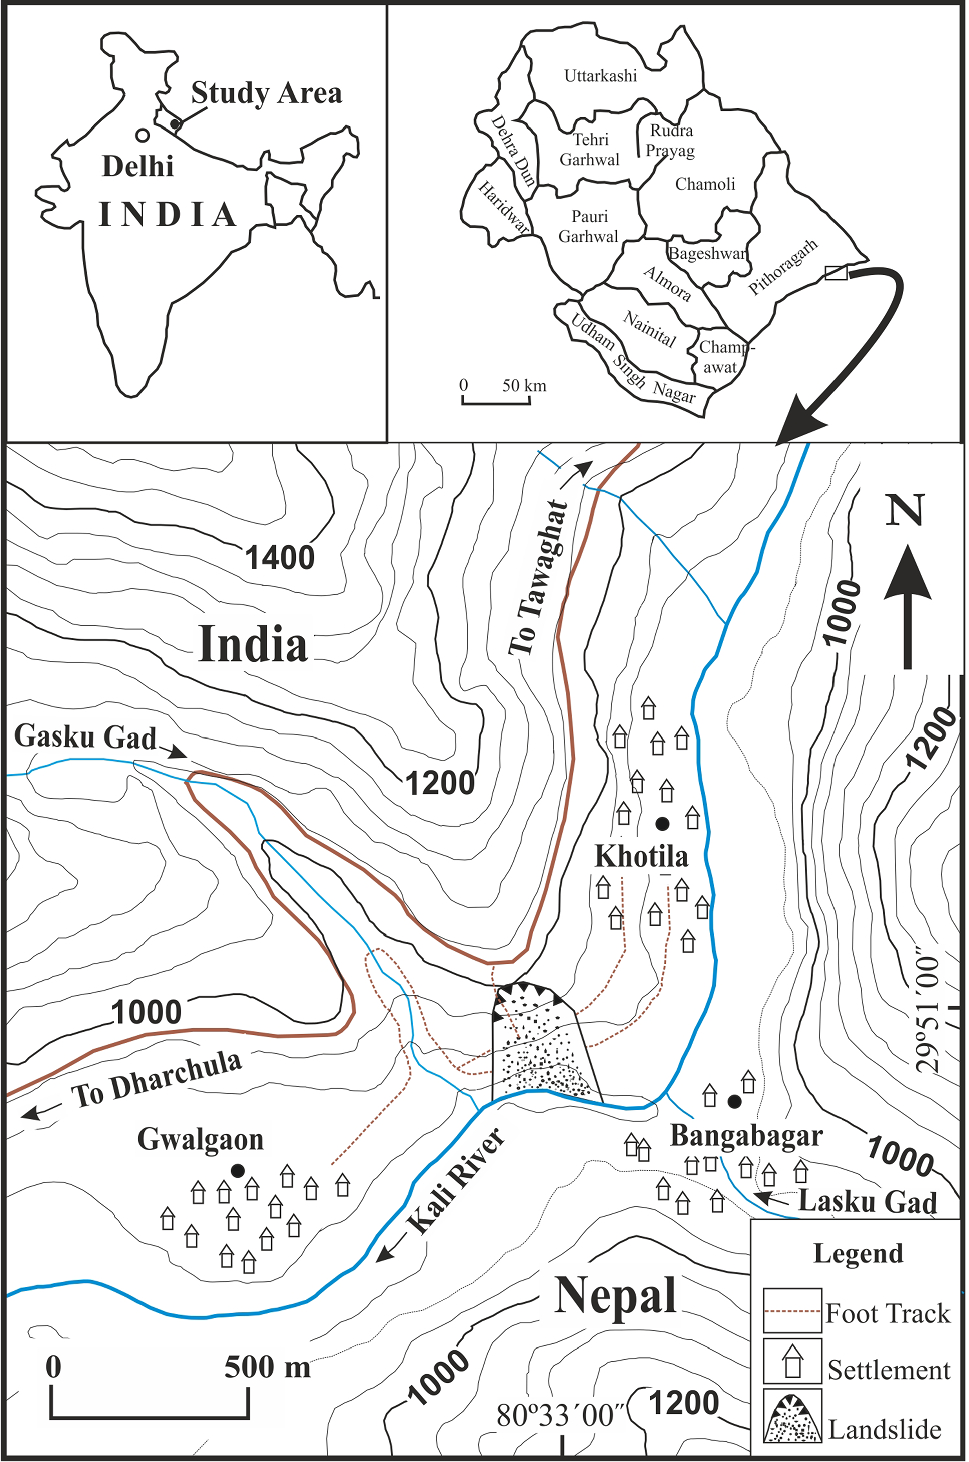 Geological and geotechnical characterisation of the Khotila